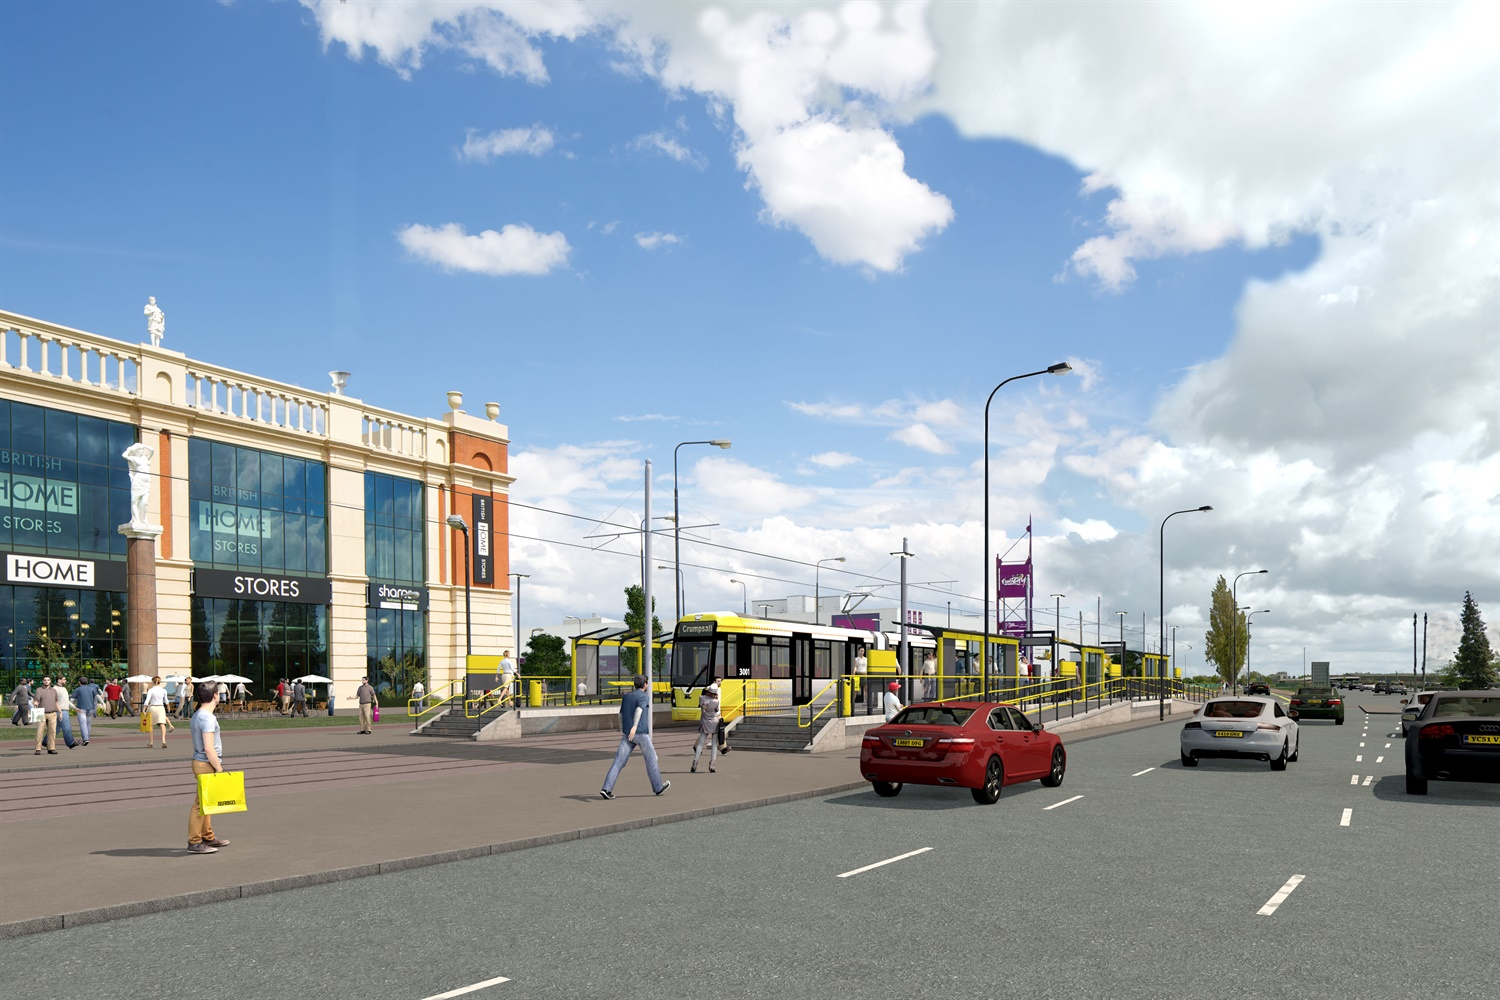 MPT wins £350m contract to build Metrolink's Trafford Park extension